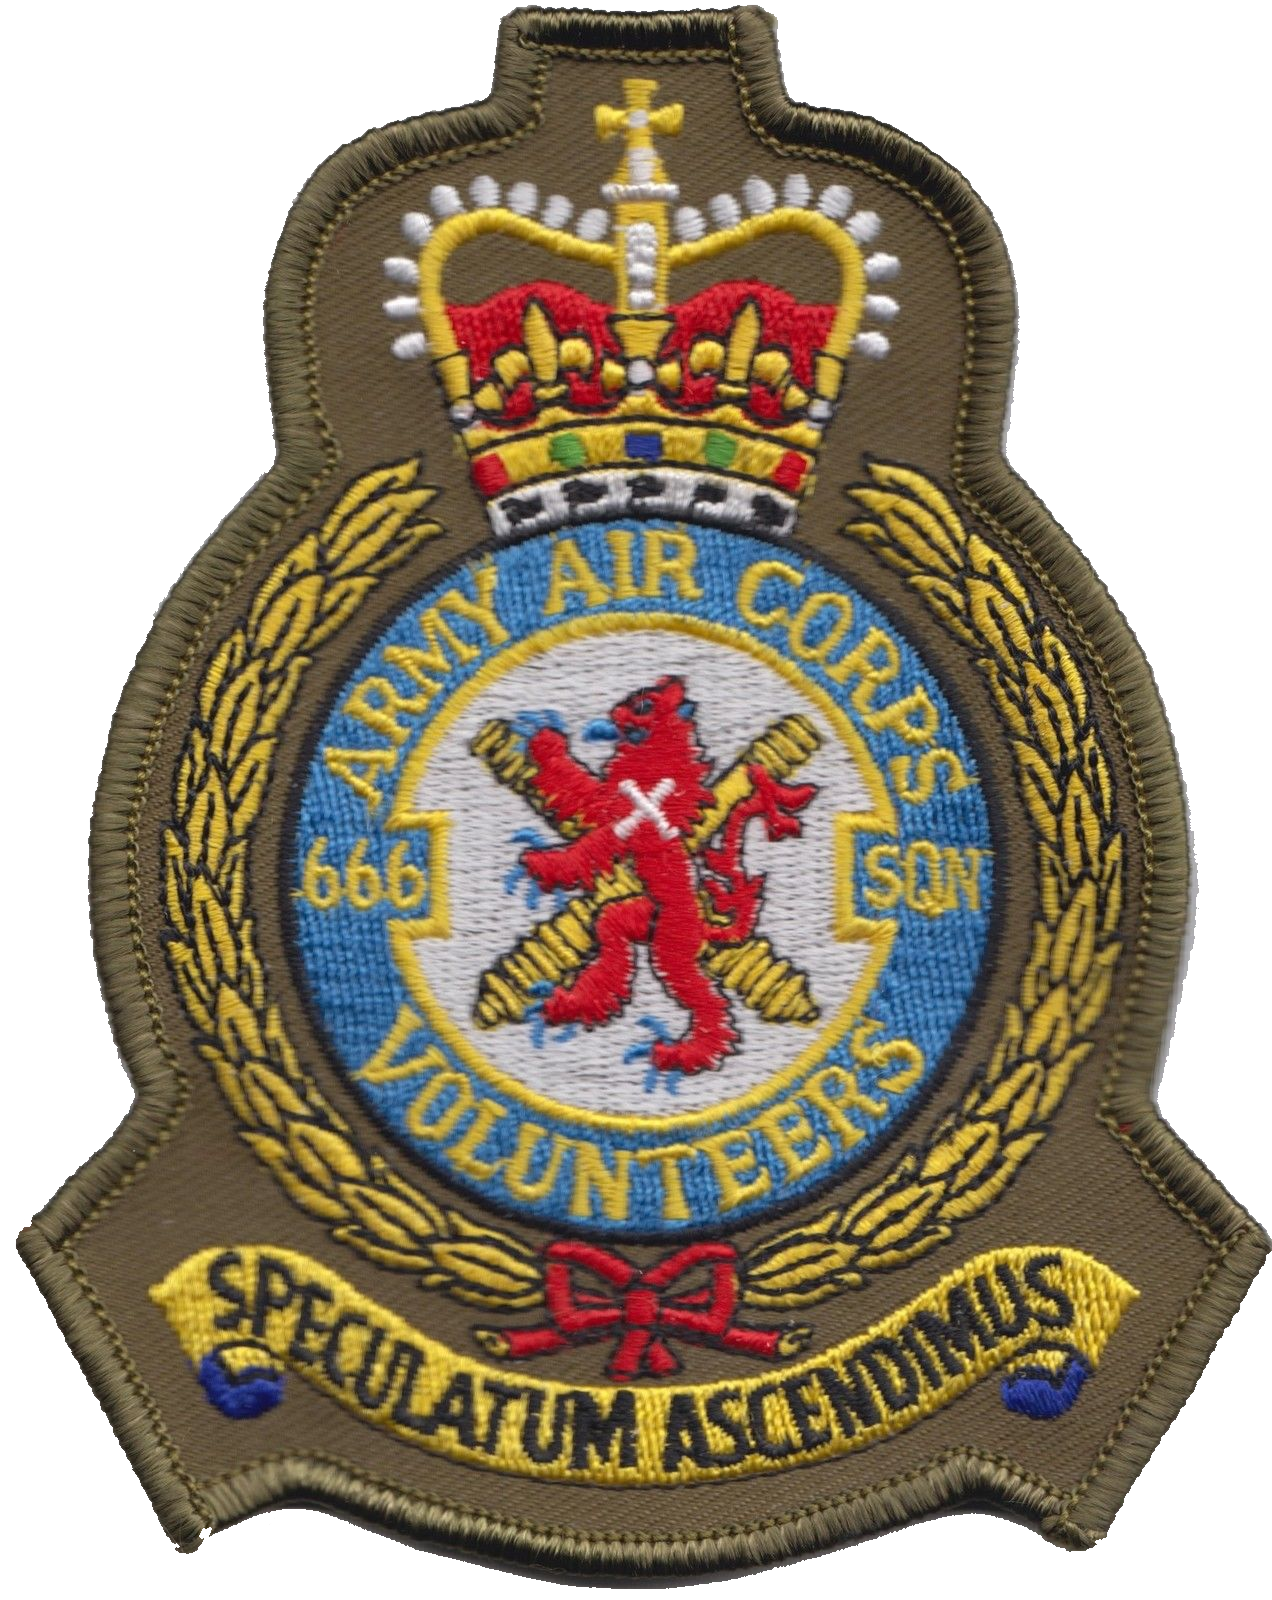 No 666 squadron british army air corps aac crest olive mod 666 squadron british army air corps aac crest olive mod embroidered patch biocorpaavc Gallery